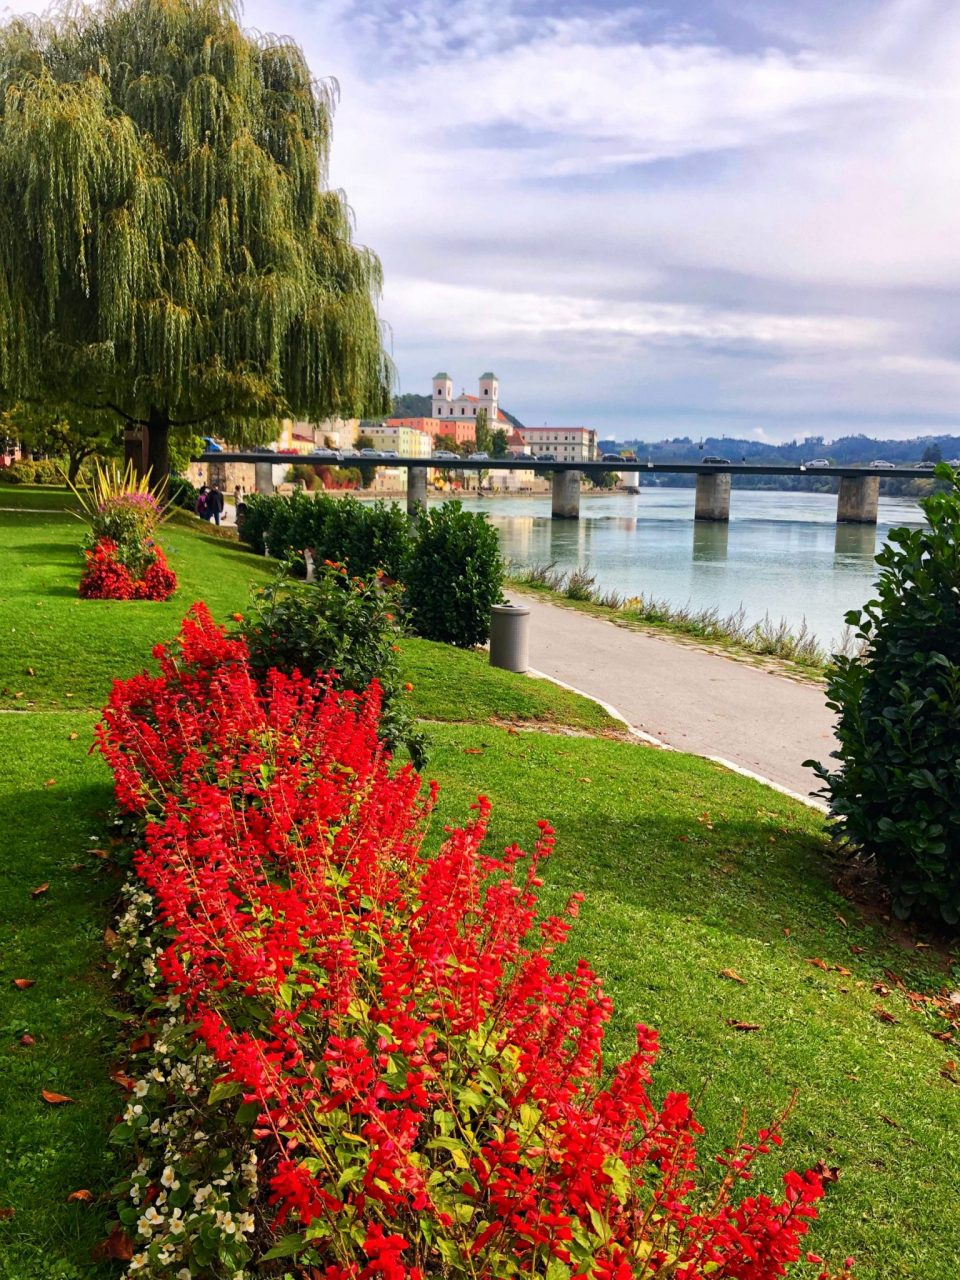 At the banks in Passau, Ufer